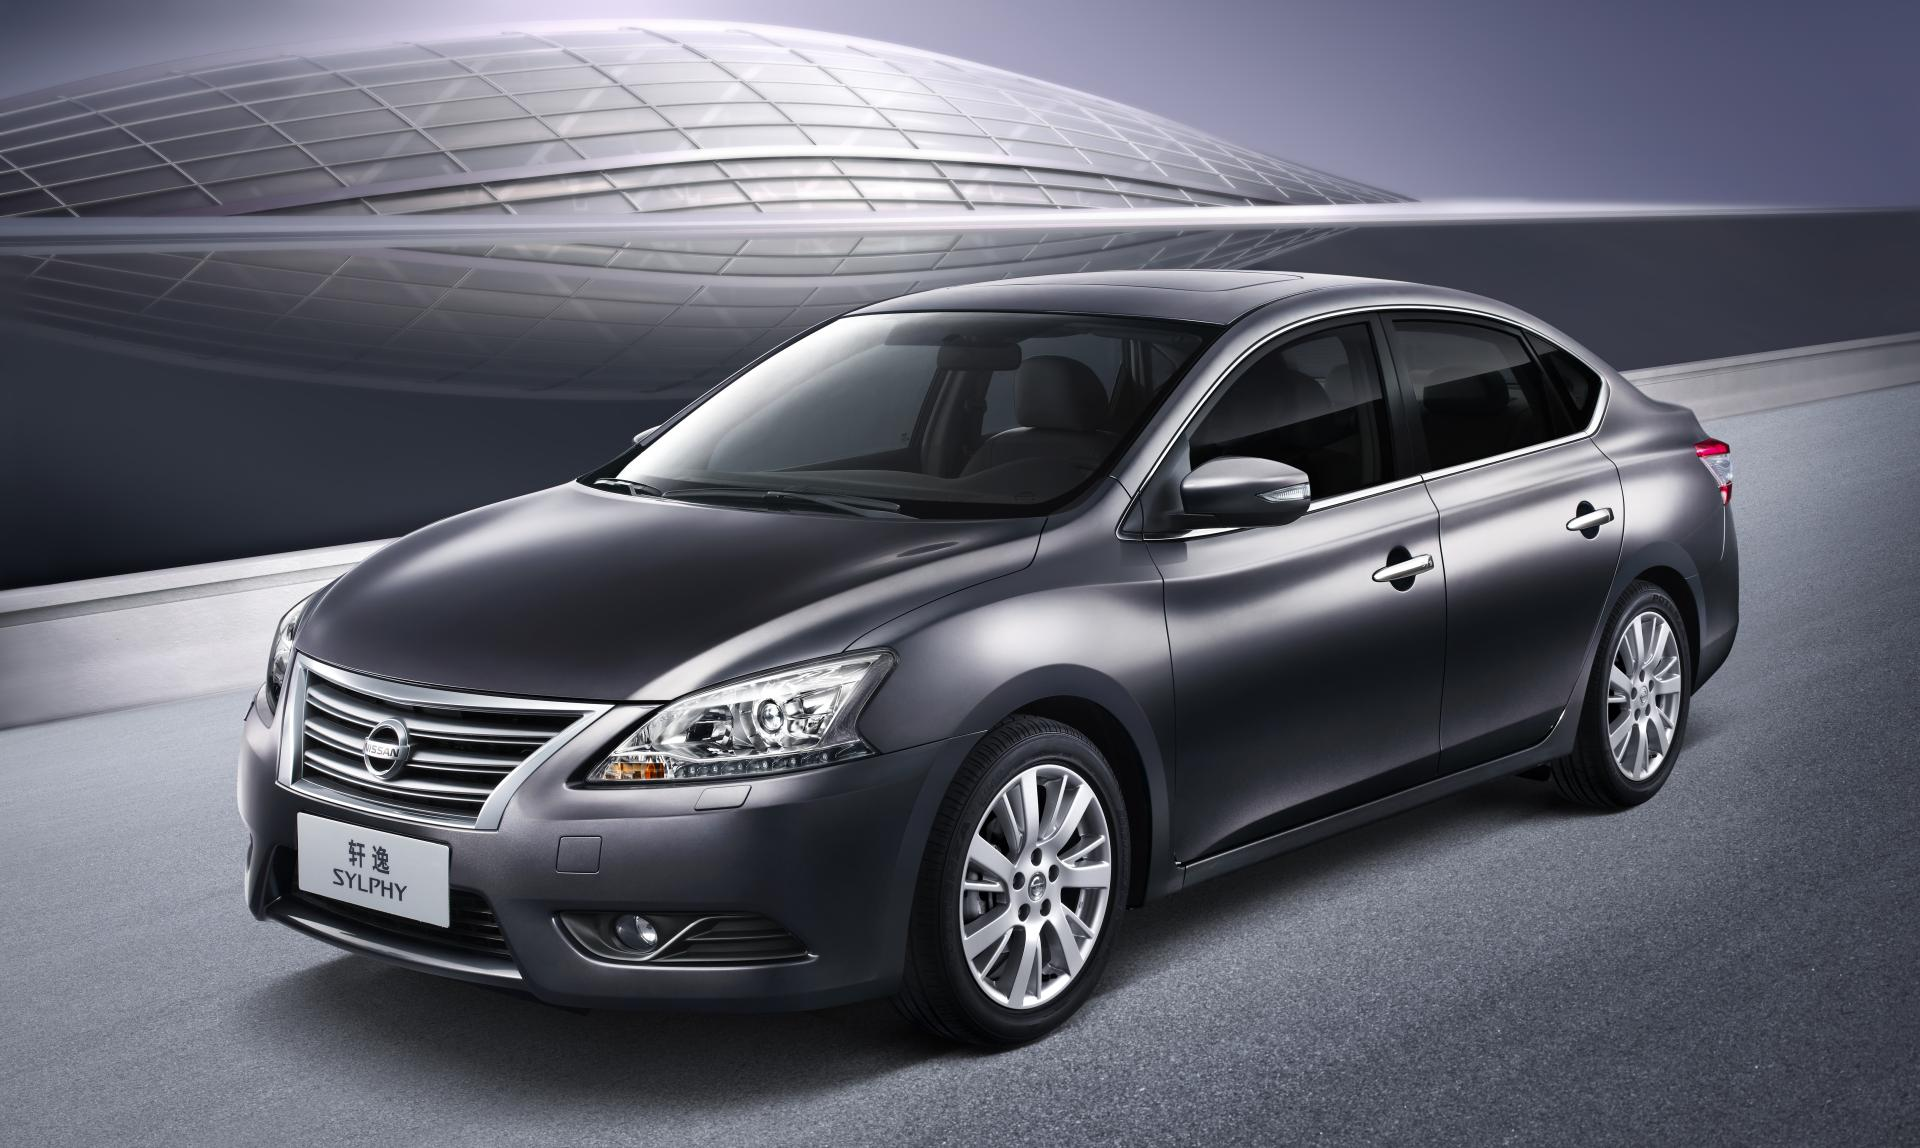 2012 Nissan Sylphy Concept News and Information, Research ...